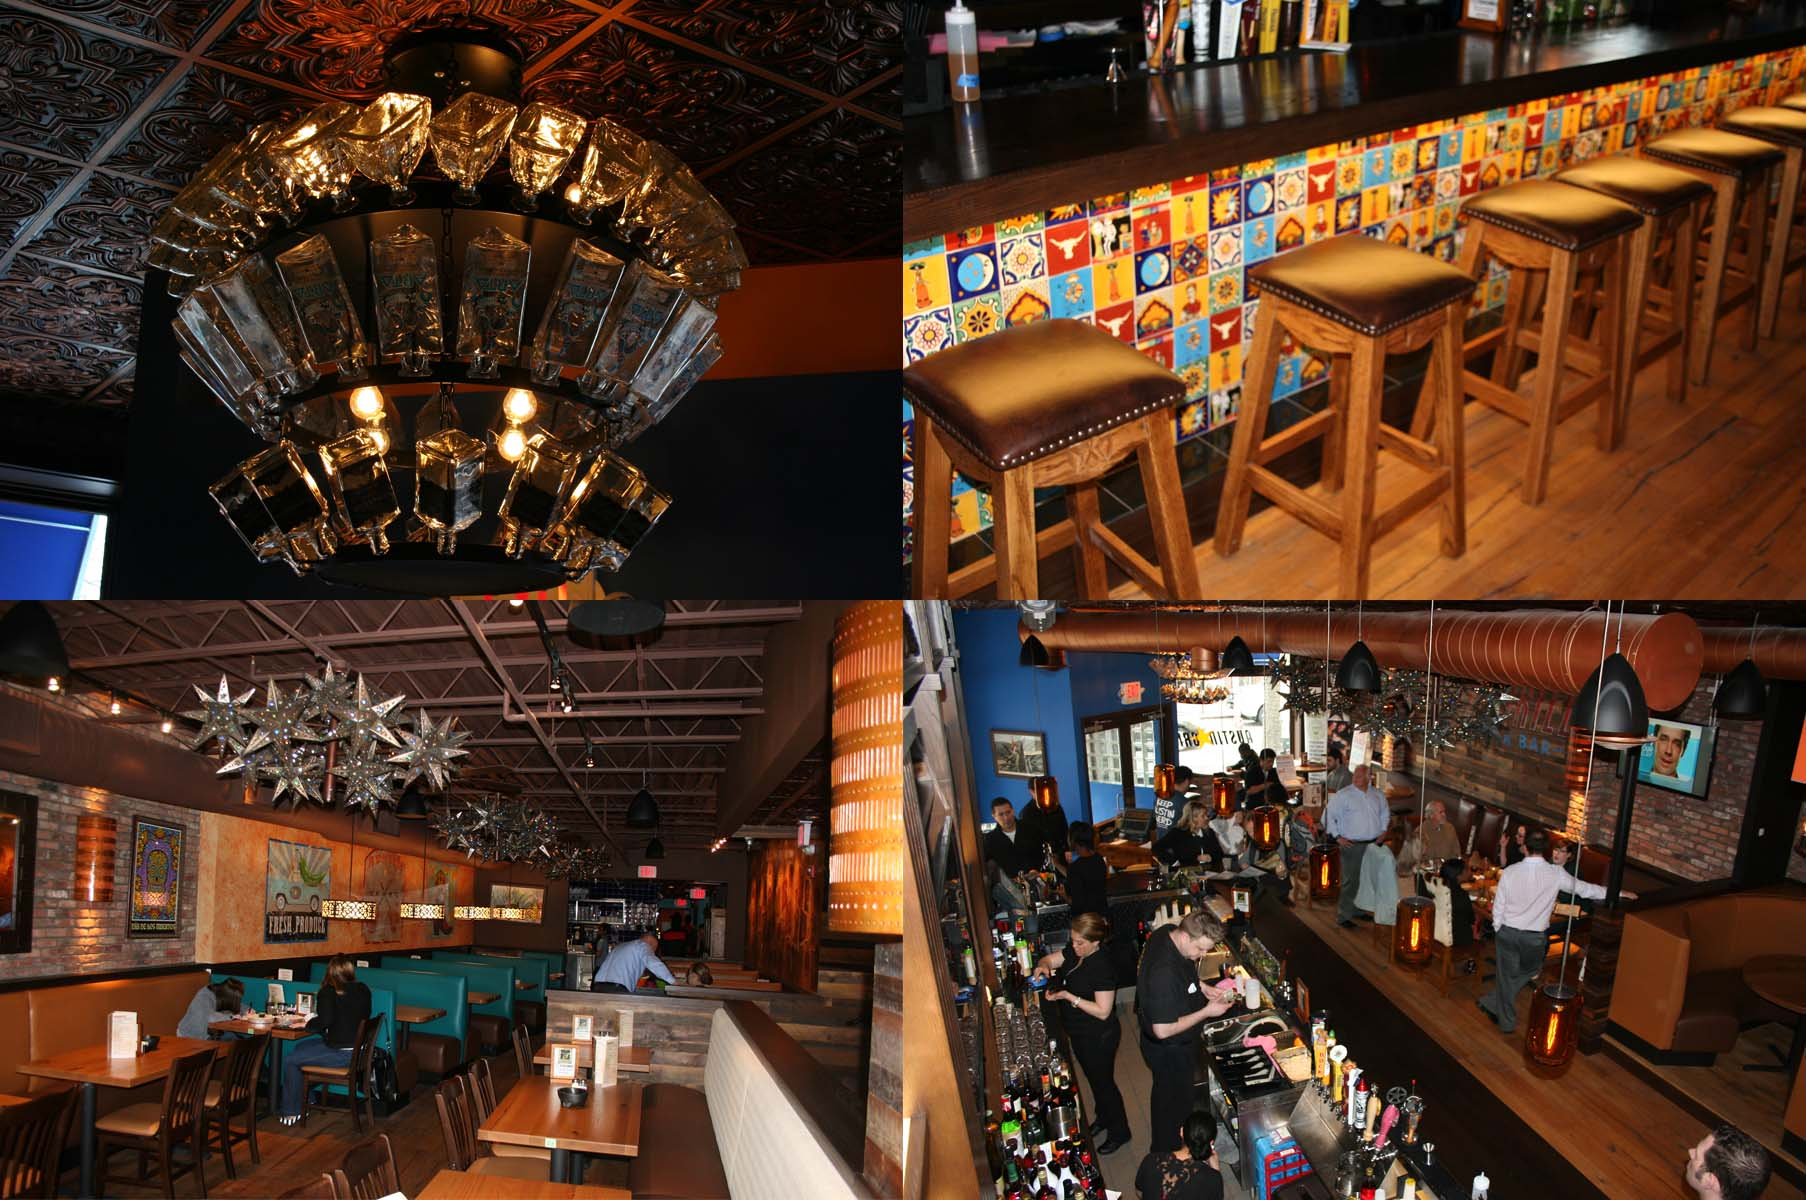 The $1.5 million refresh includes new tequila bottle chandeliers (clockwise from top left), a bigger tiled bar, the downstairs dining room where tables have replaced booths and the upstairs dining room. (Photo: Mark Heckathorn/DC on Heels)